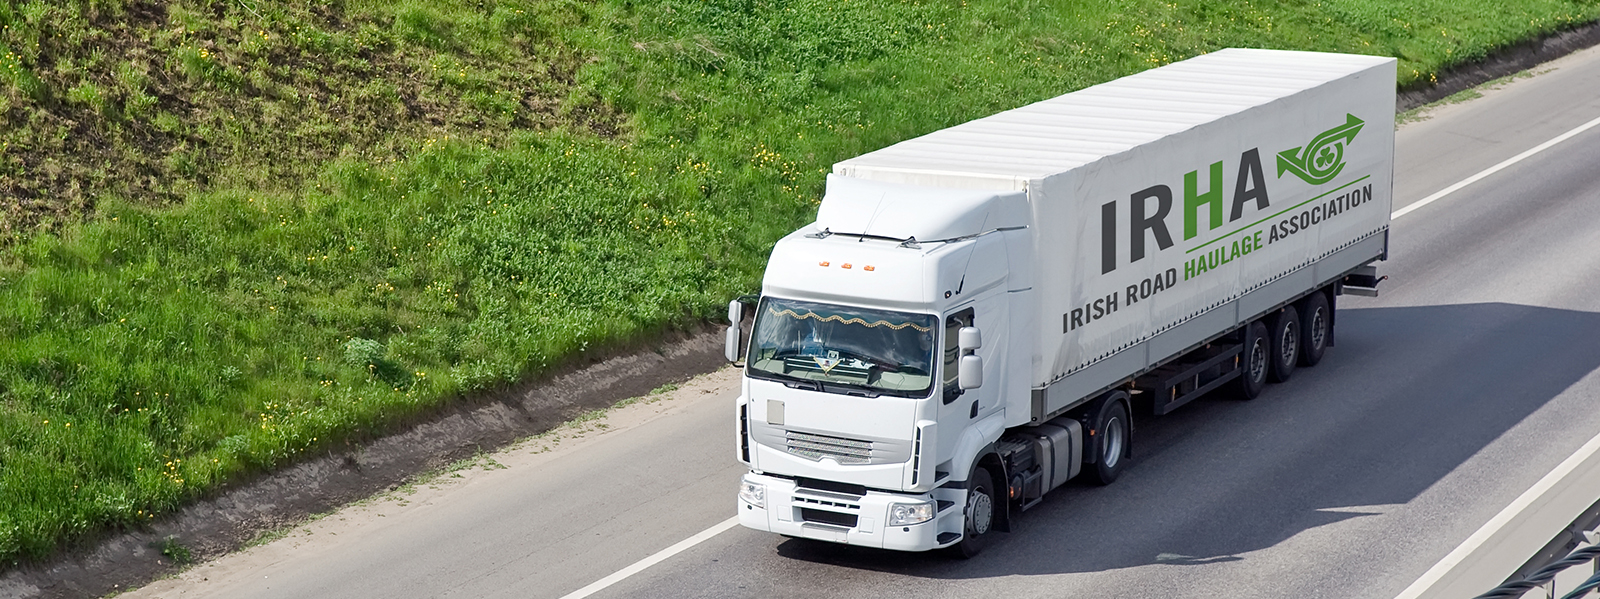 IRHA Welcomes UK's Move to Relax Tachograph Rules for Drivers Affected by Calais Chaos – 28th of July 2015